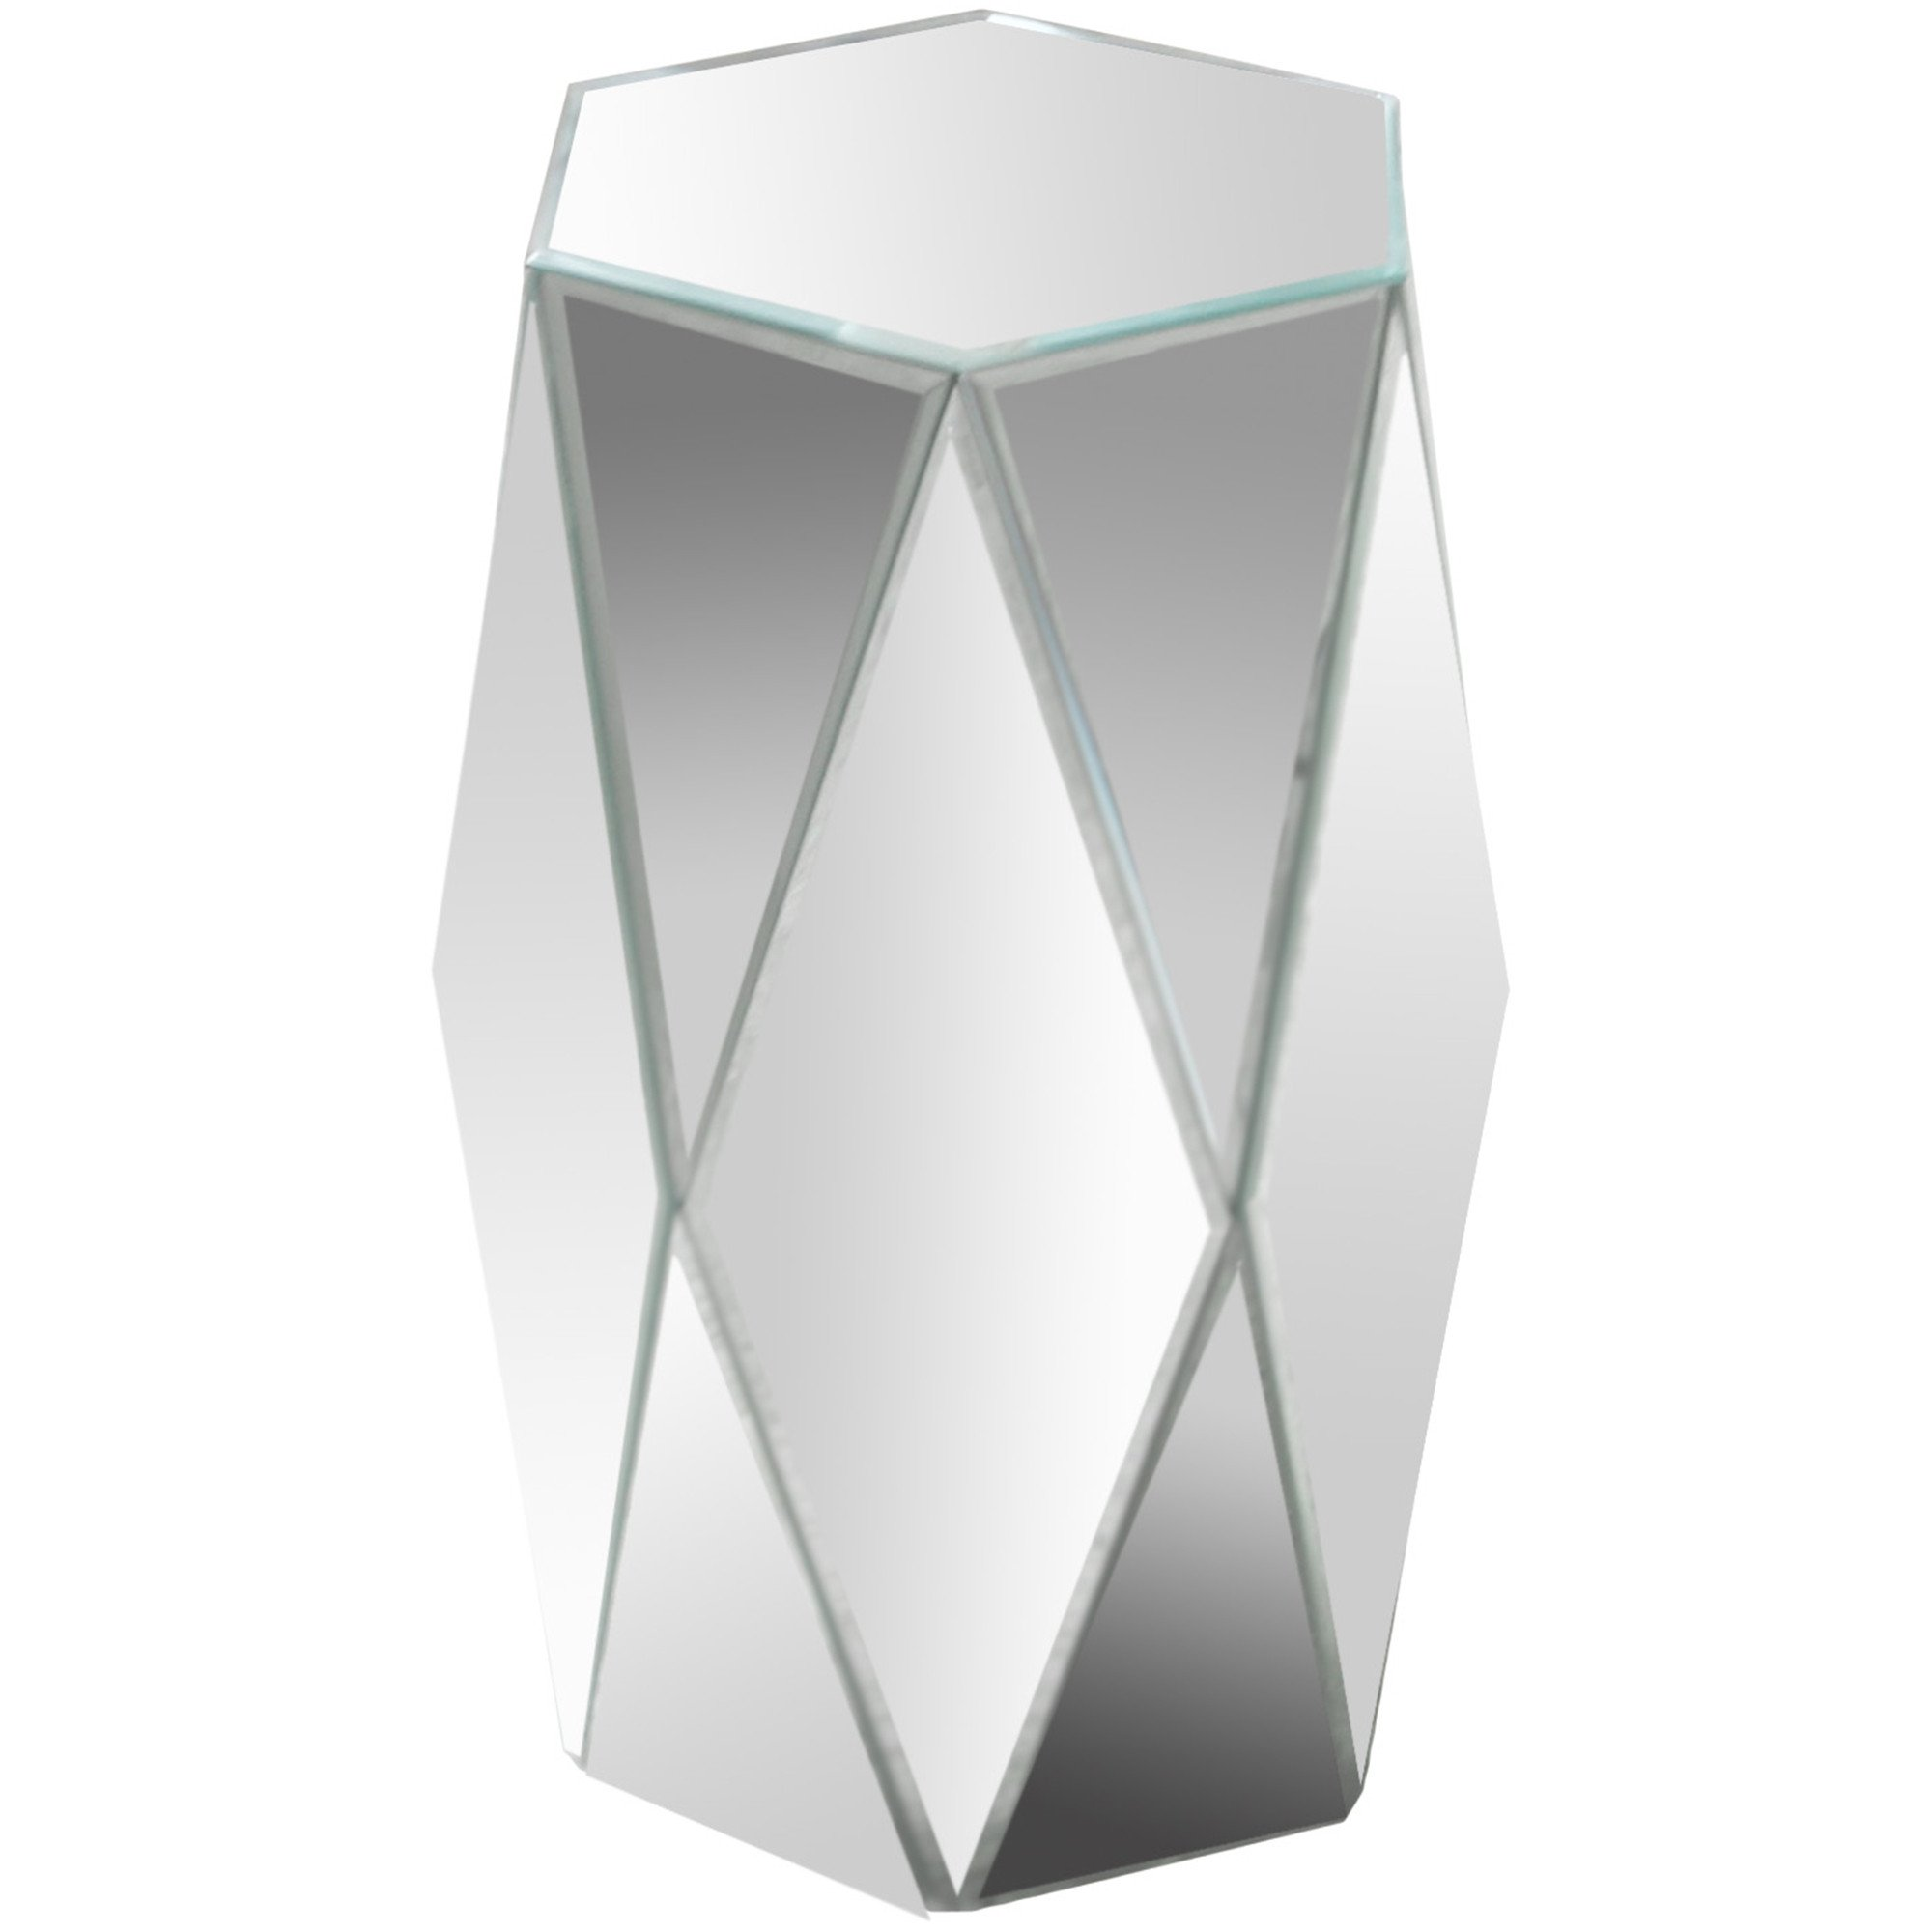 varaluz casa hexagonal mirrored accent table white patio lounger side designs ethan allen sofa modern desk lamp black metal end beautiful coffee tables cool nightstands small tall